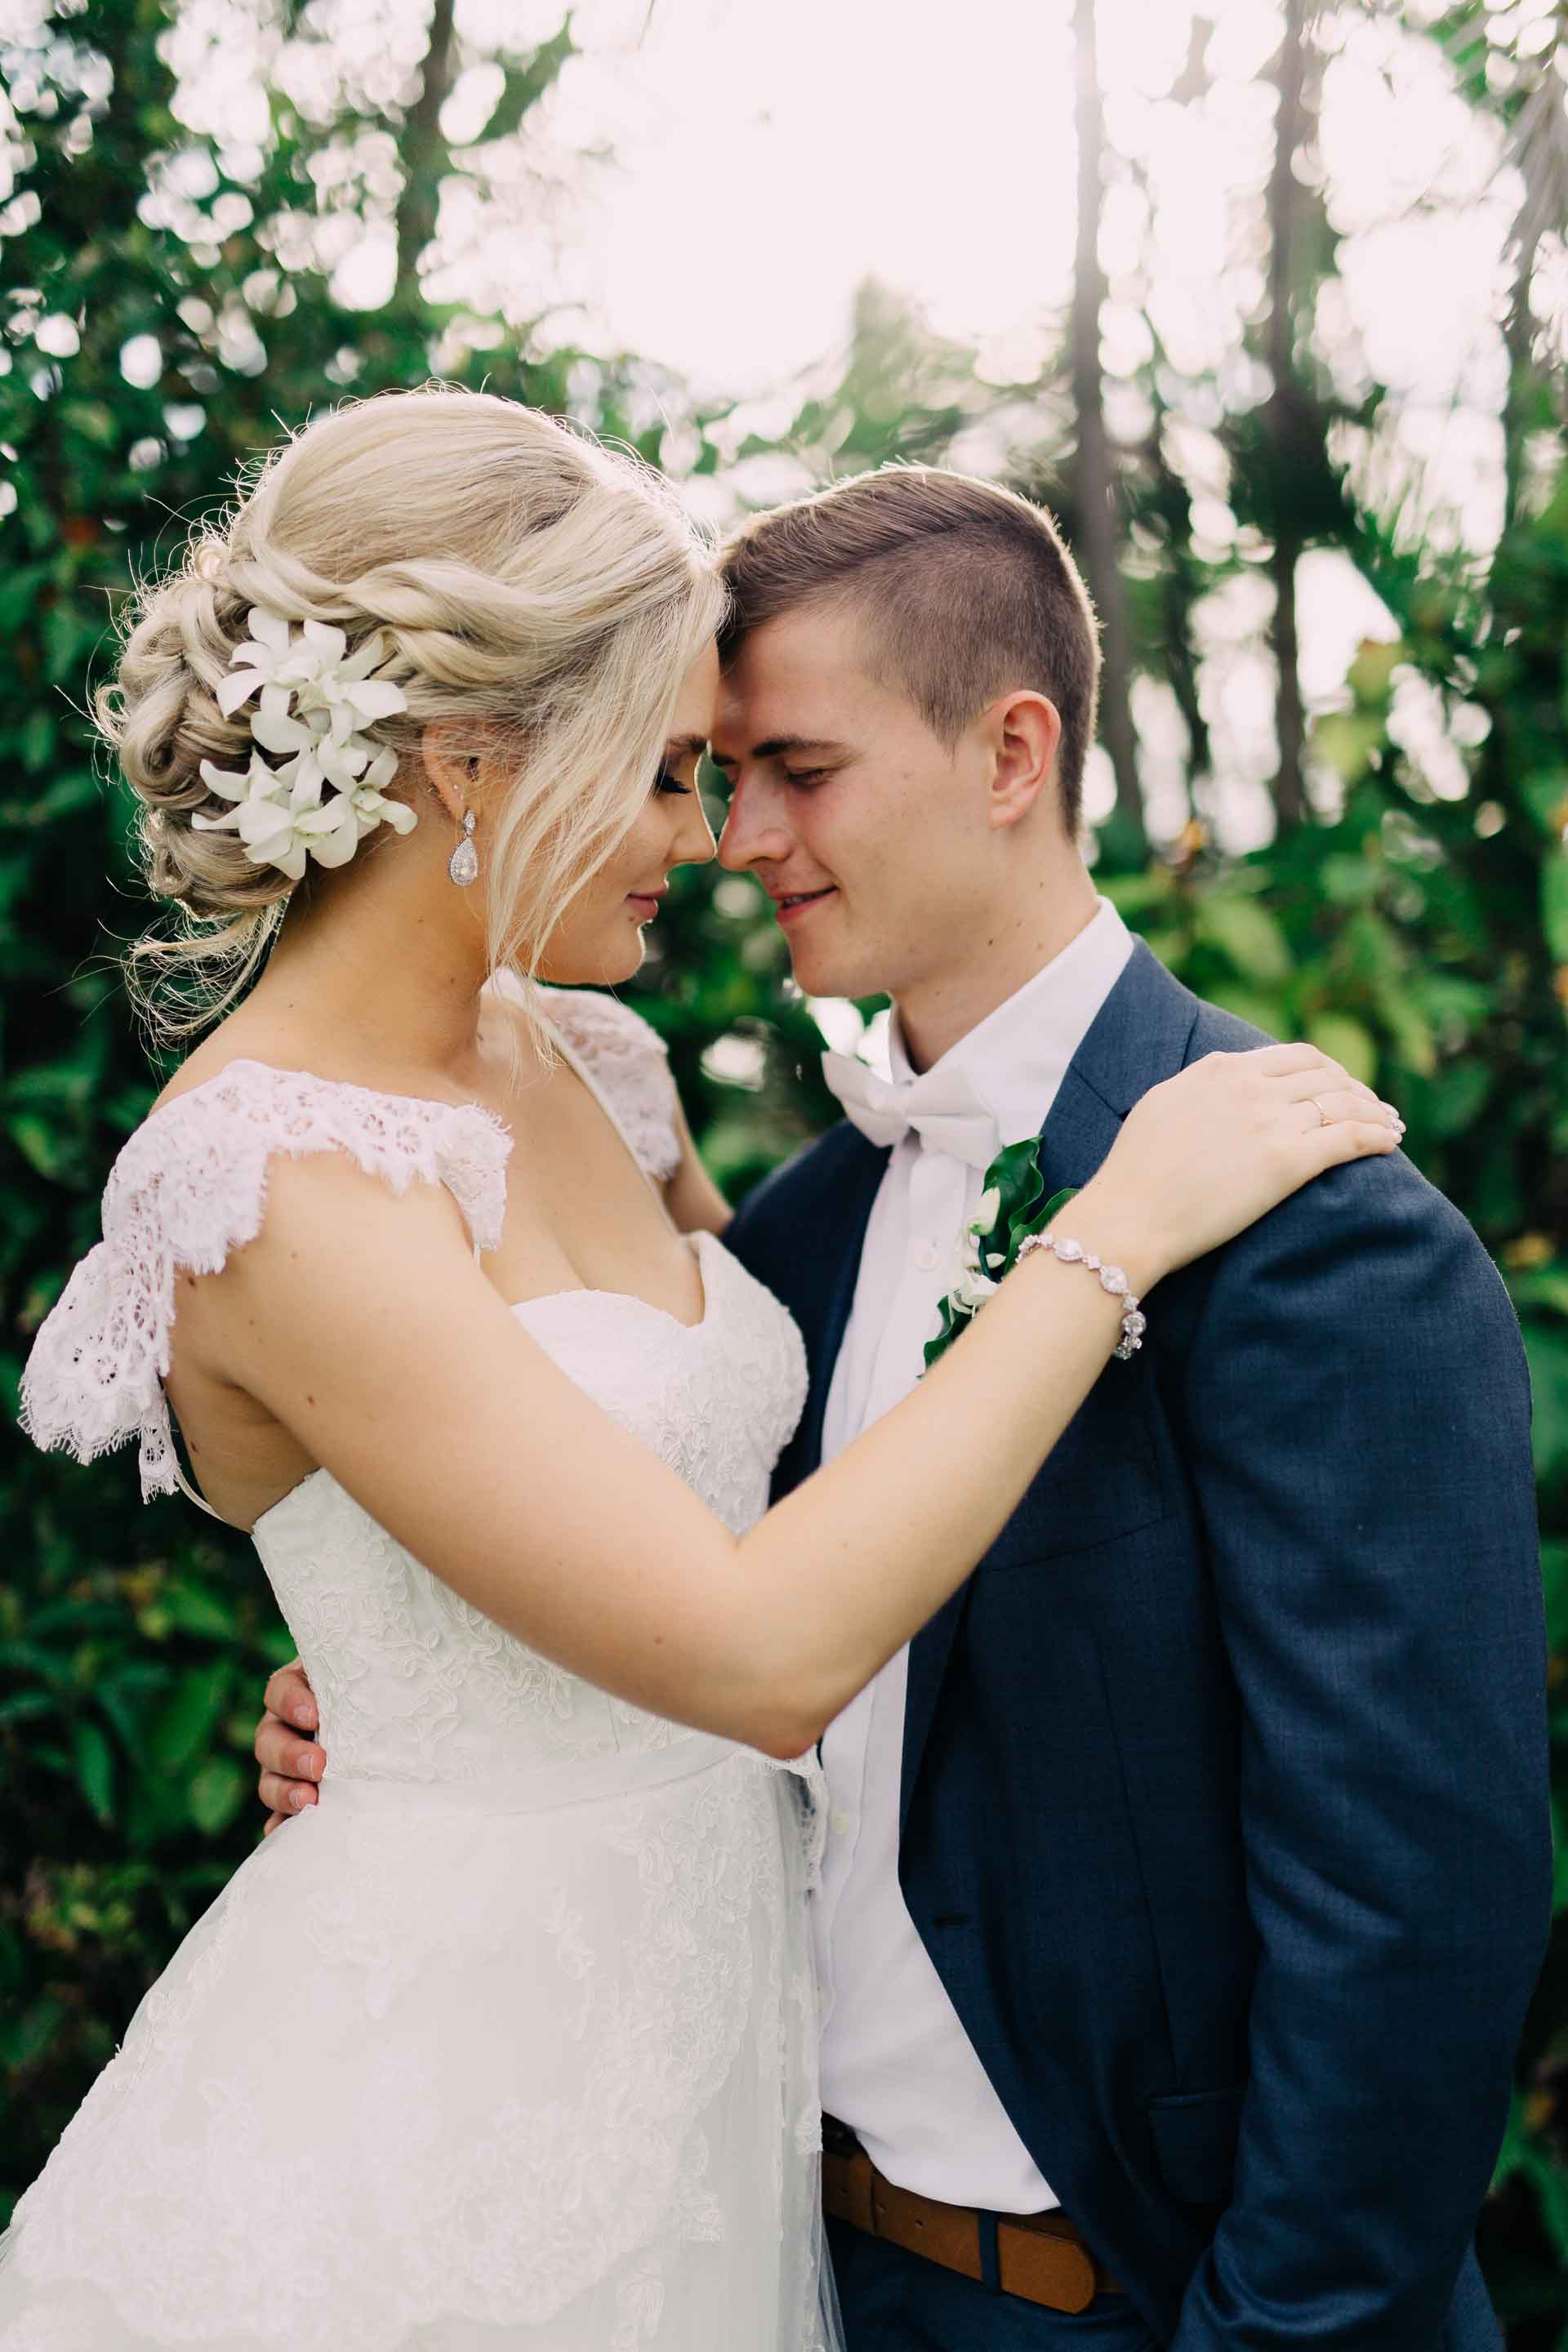 Newlyweds touch foreheads and smile.